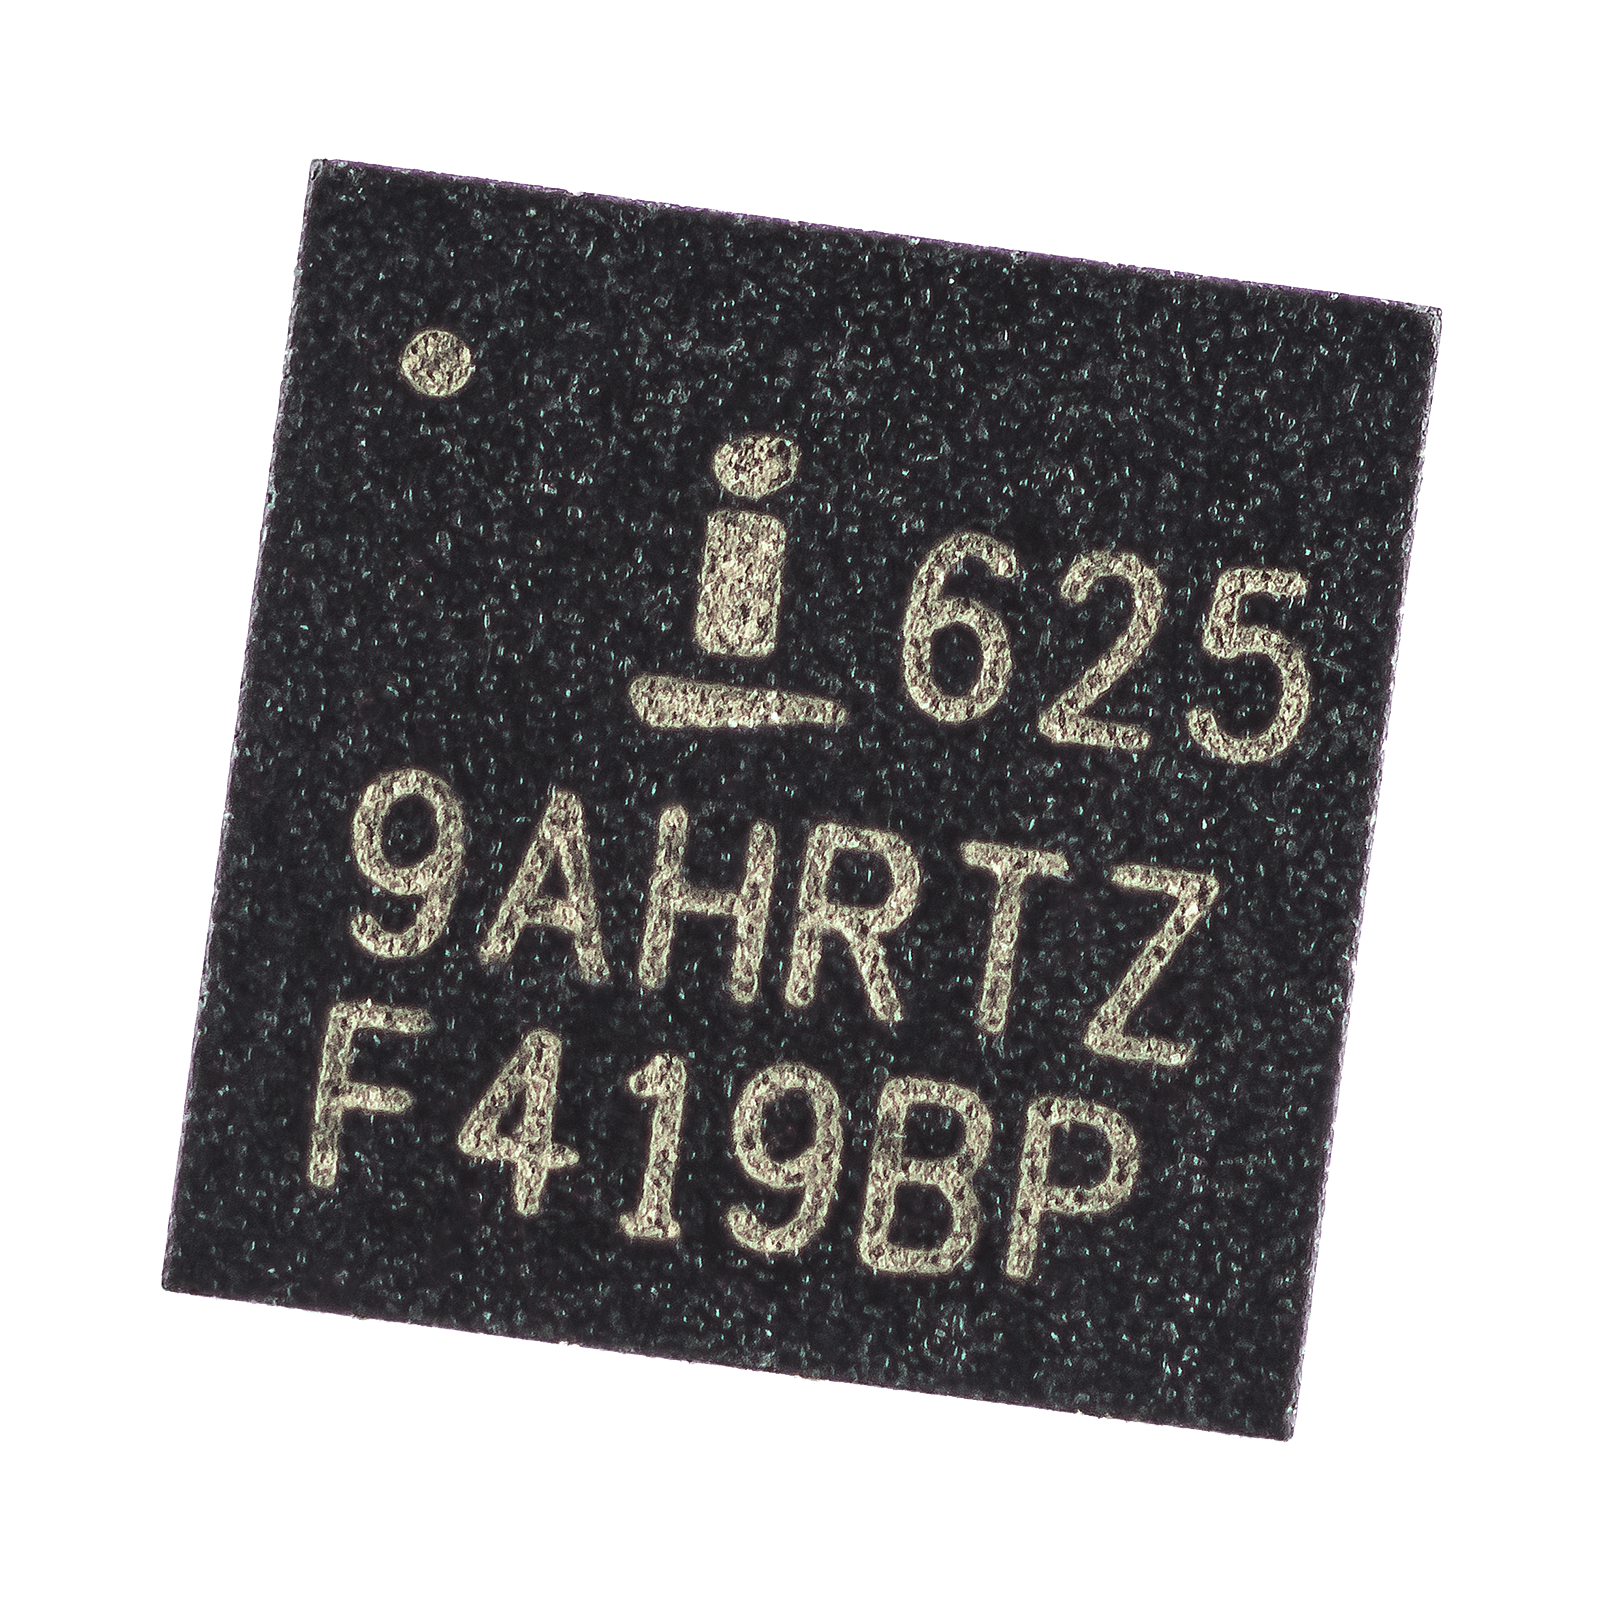 ISL6259AHRTZ Power IC Charging Chip